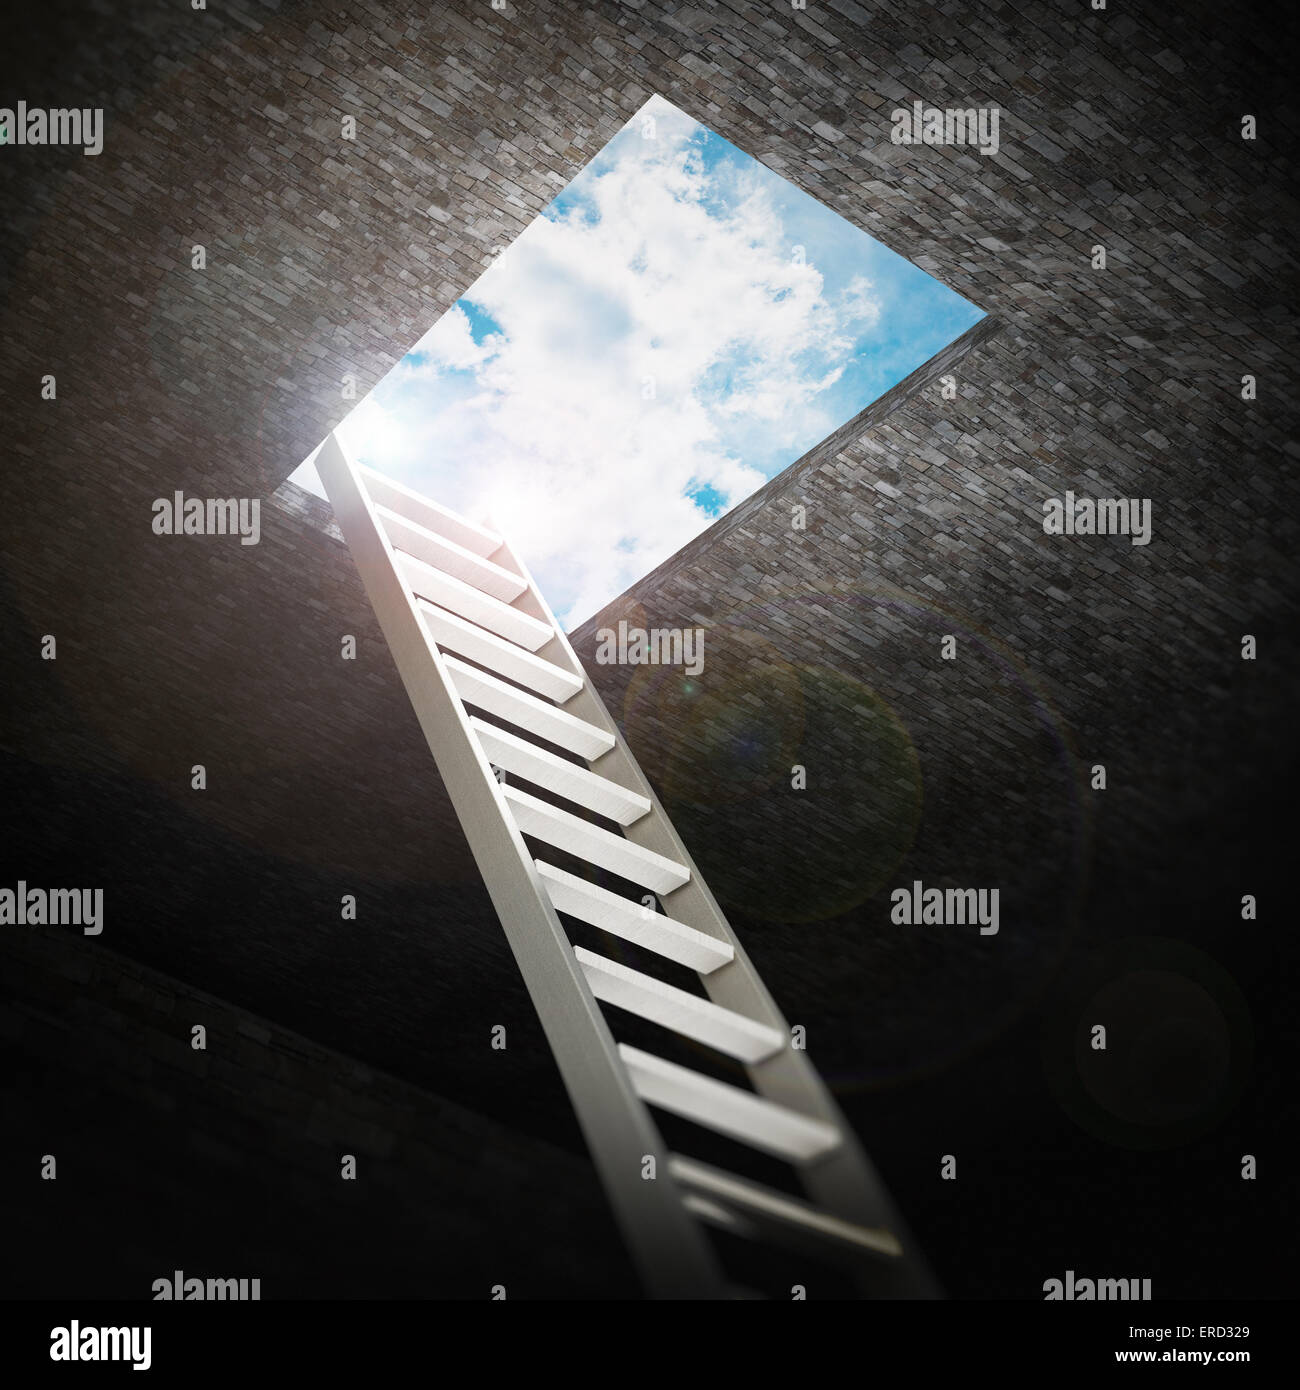 Ladder leading to the opening to the blue sky. - Stock Image